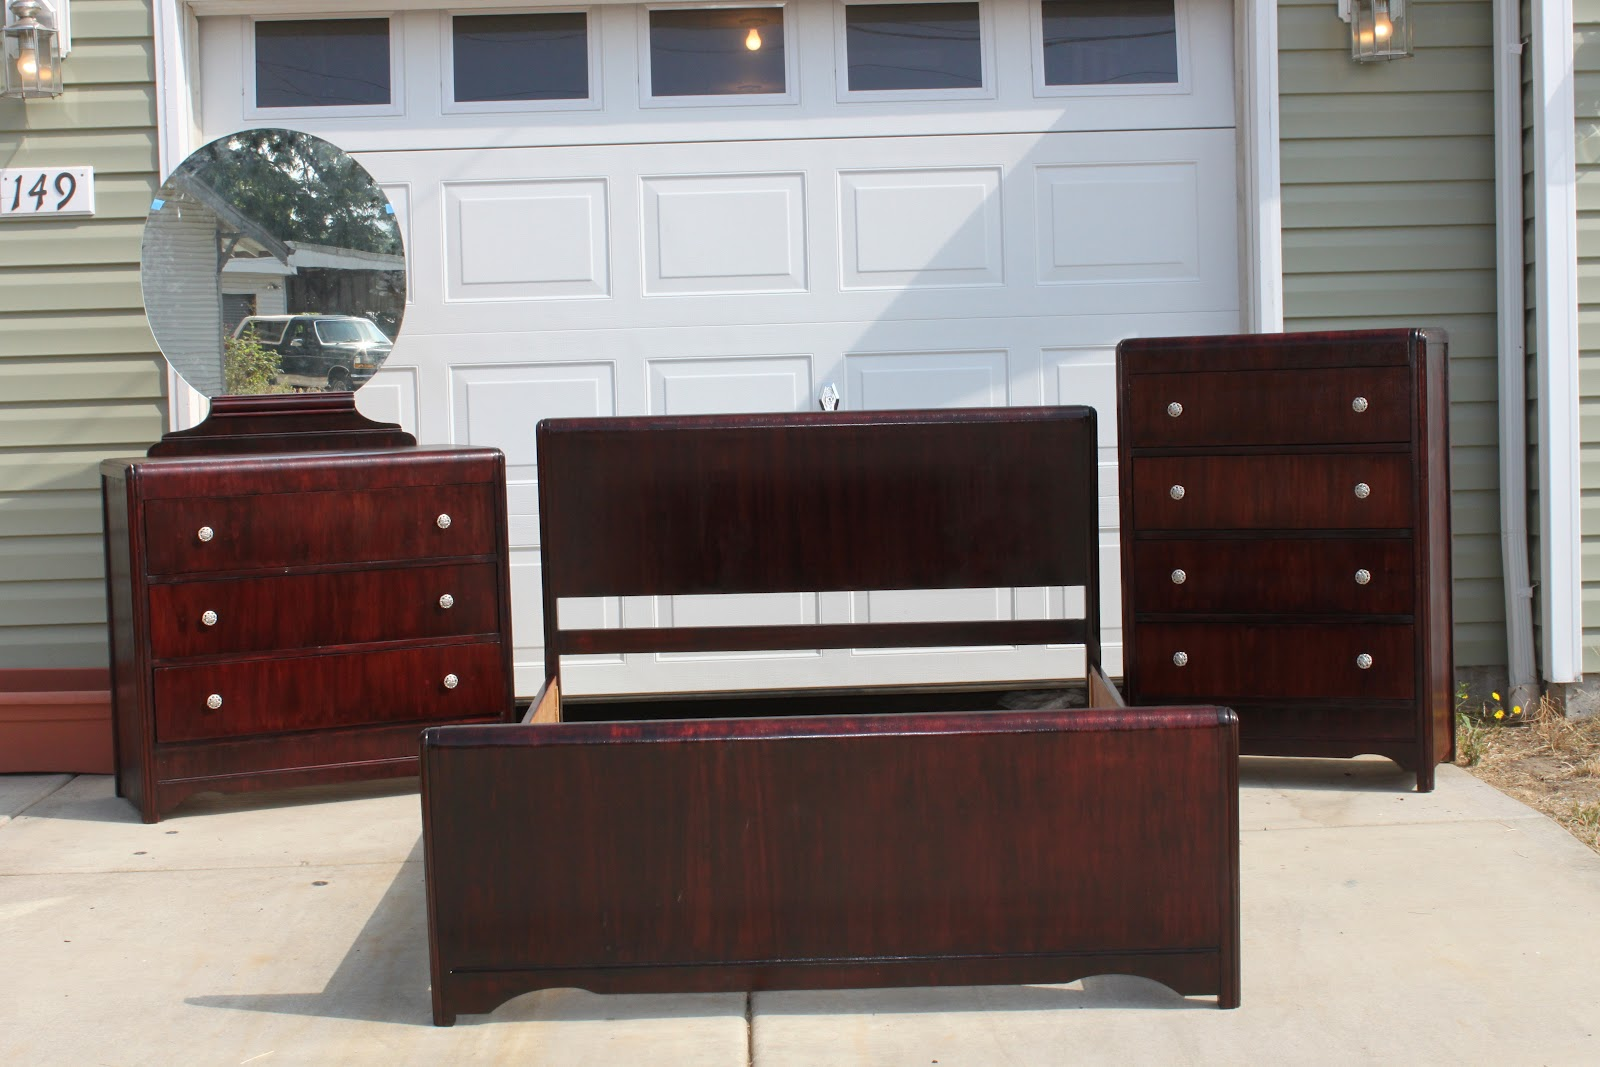 Just Finished This 3 Piece Bedroom Set. Had A Few Too Many Dings To Repair  So I Ended Up Having To Go With The Dark Stain On It, But I Think It Turned  Out ...